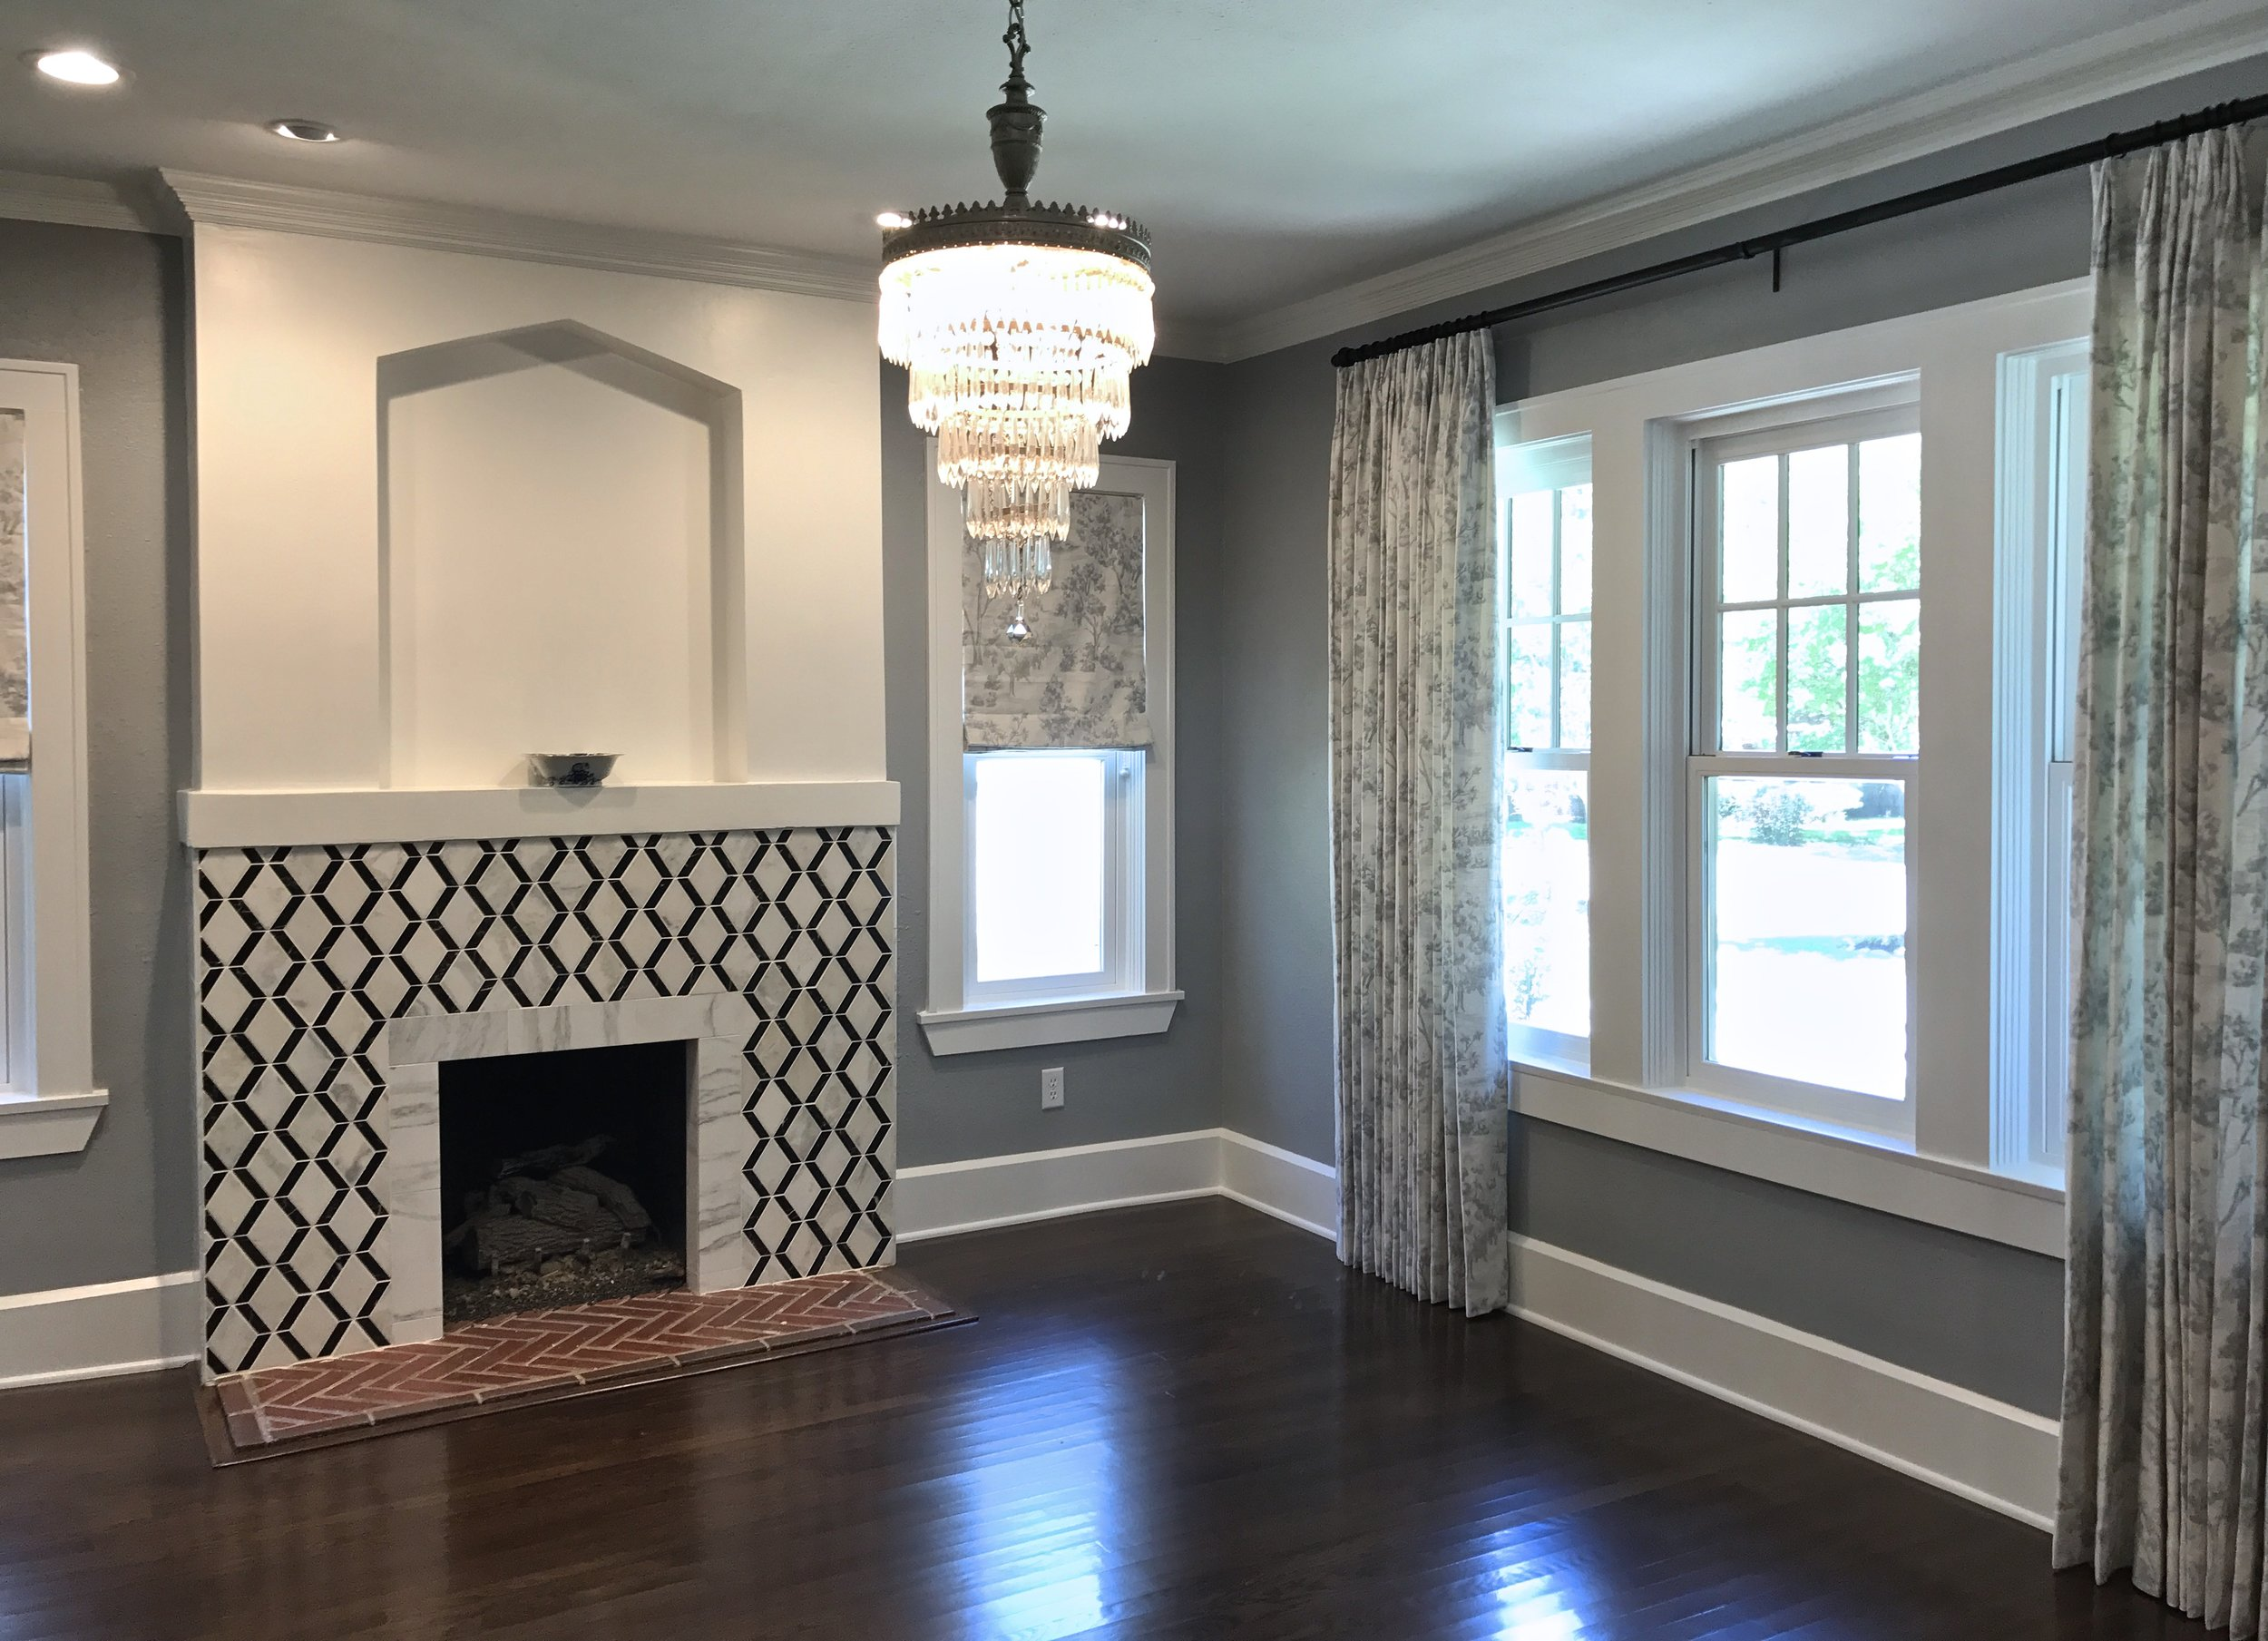 New energy efficient windows modeled after historic craftsman windows of the time period.